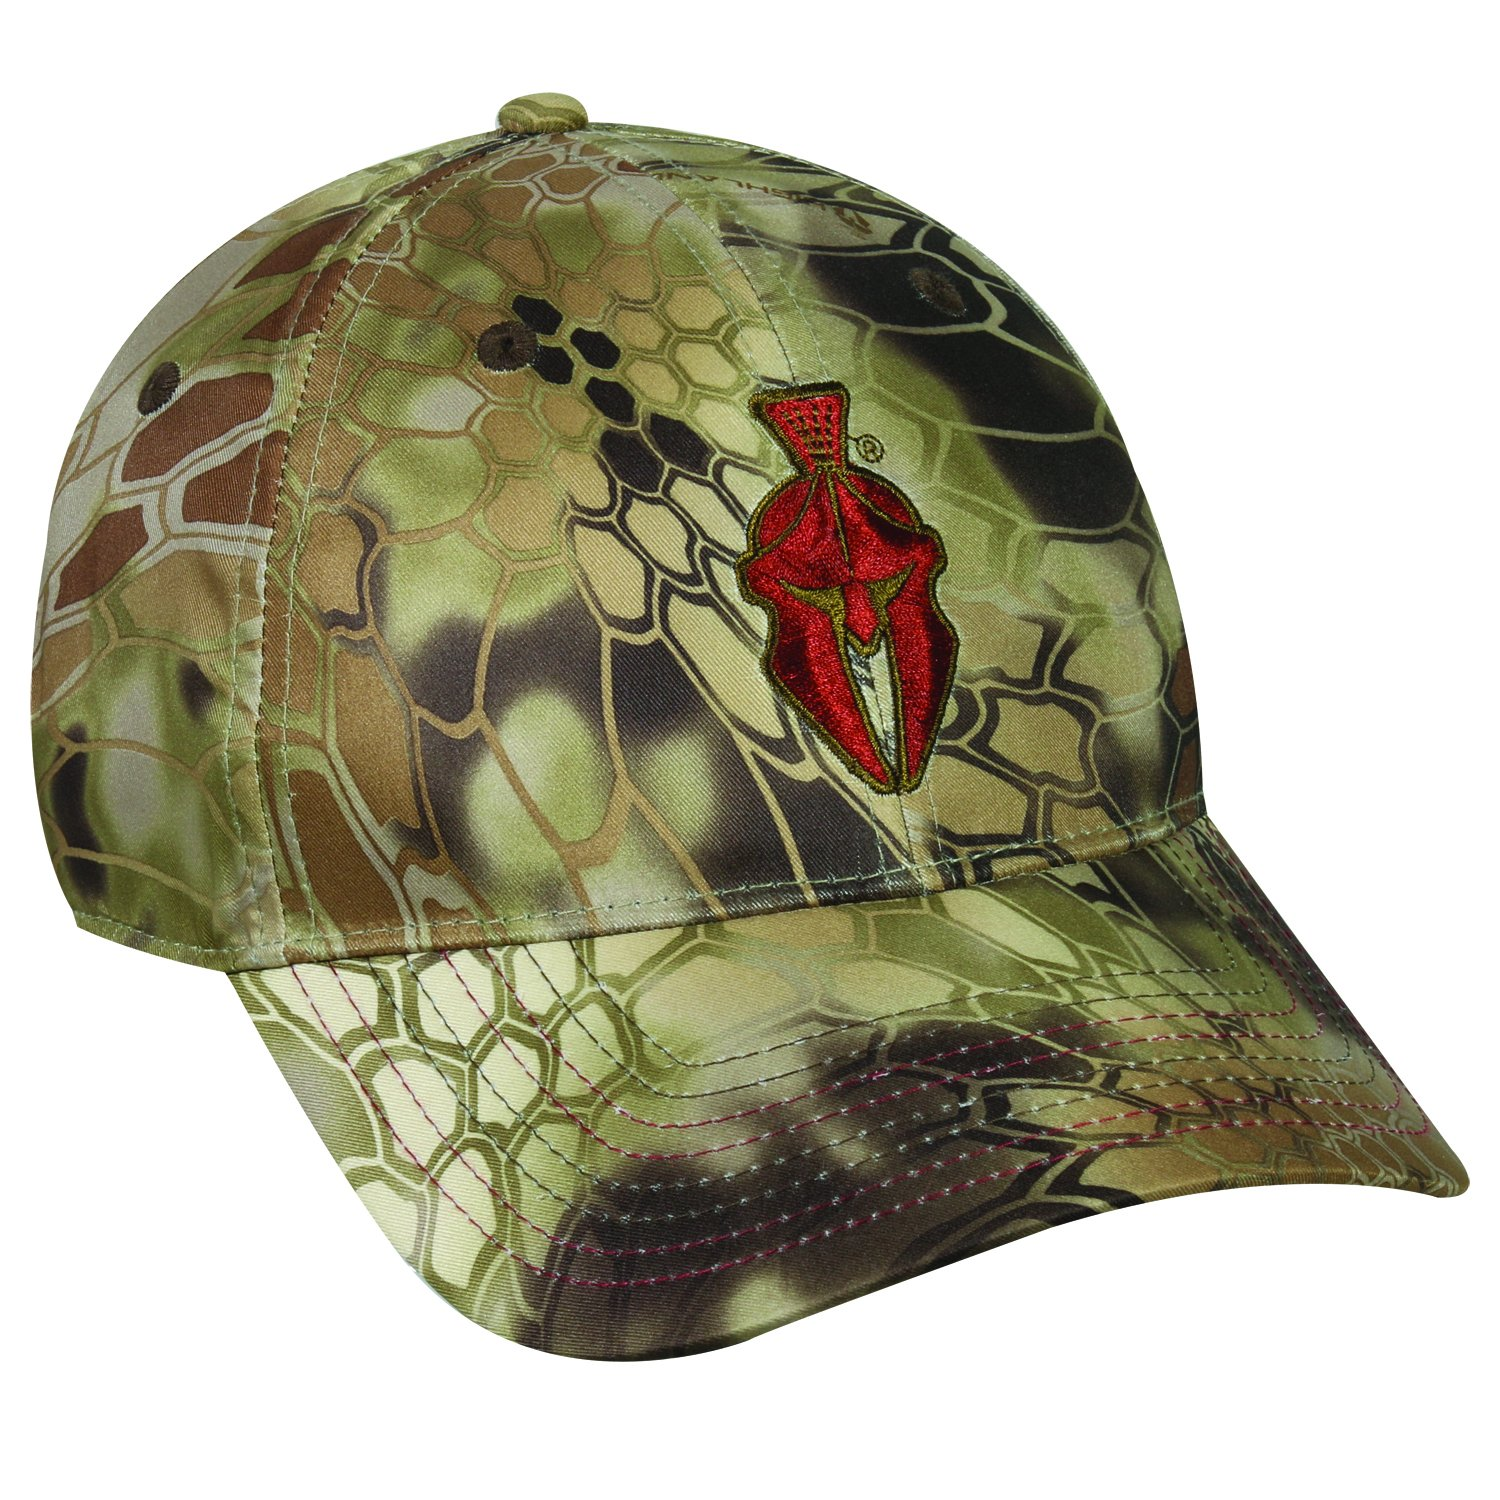 Kryptek Adjustable Closure Red Logo Cap, Highlander Camo